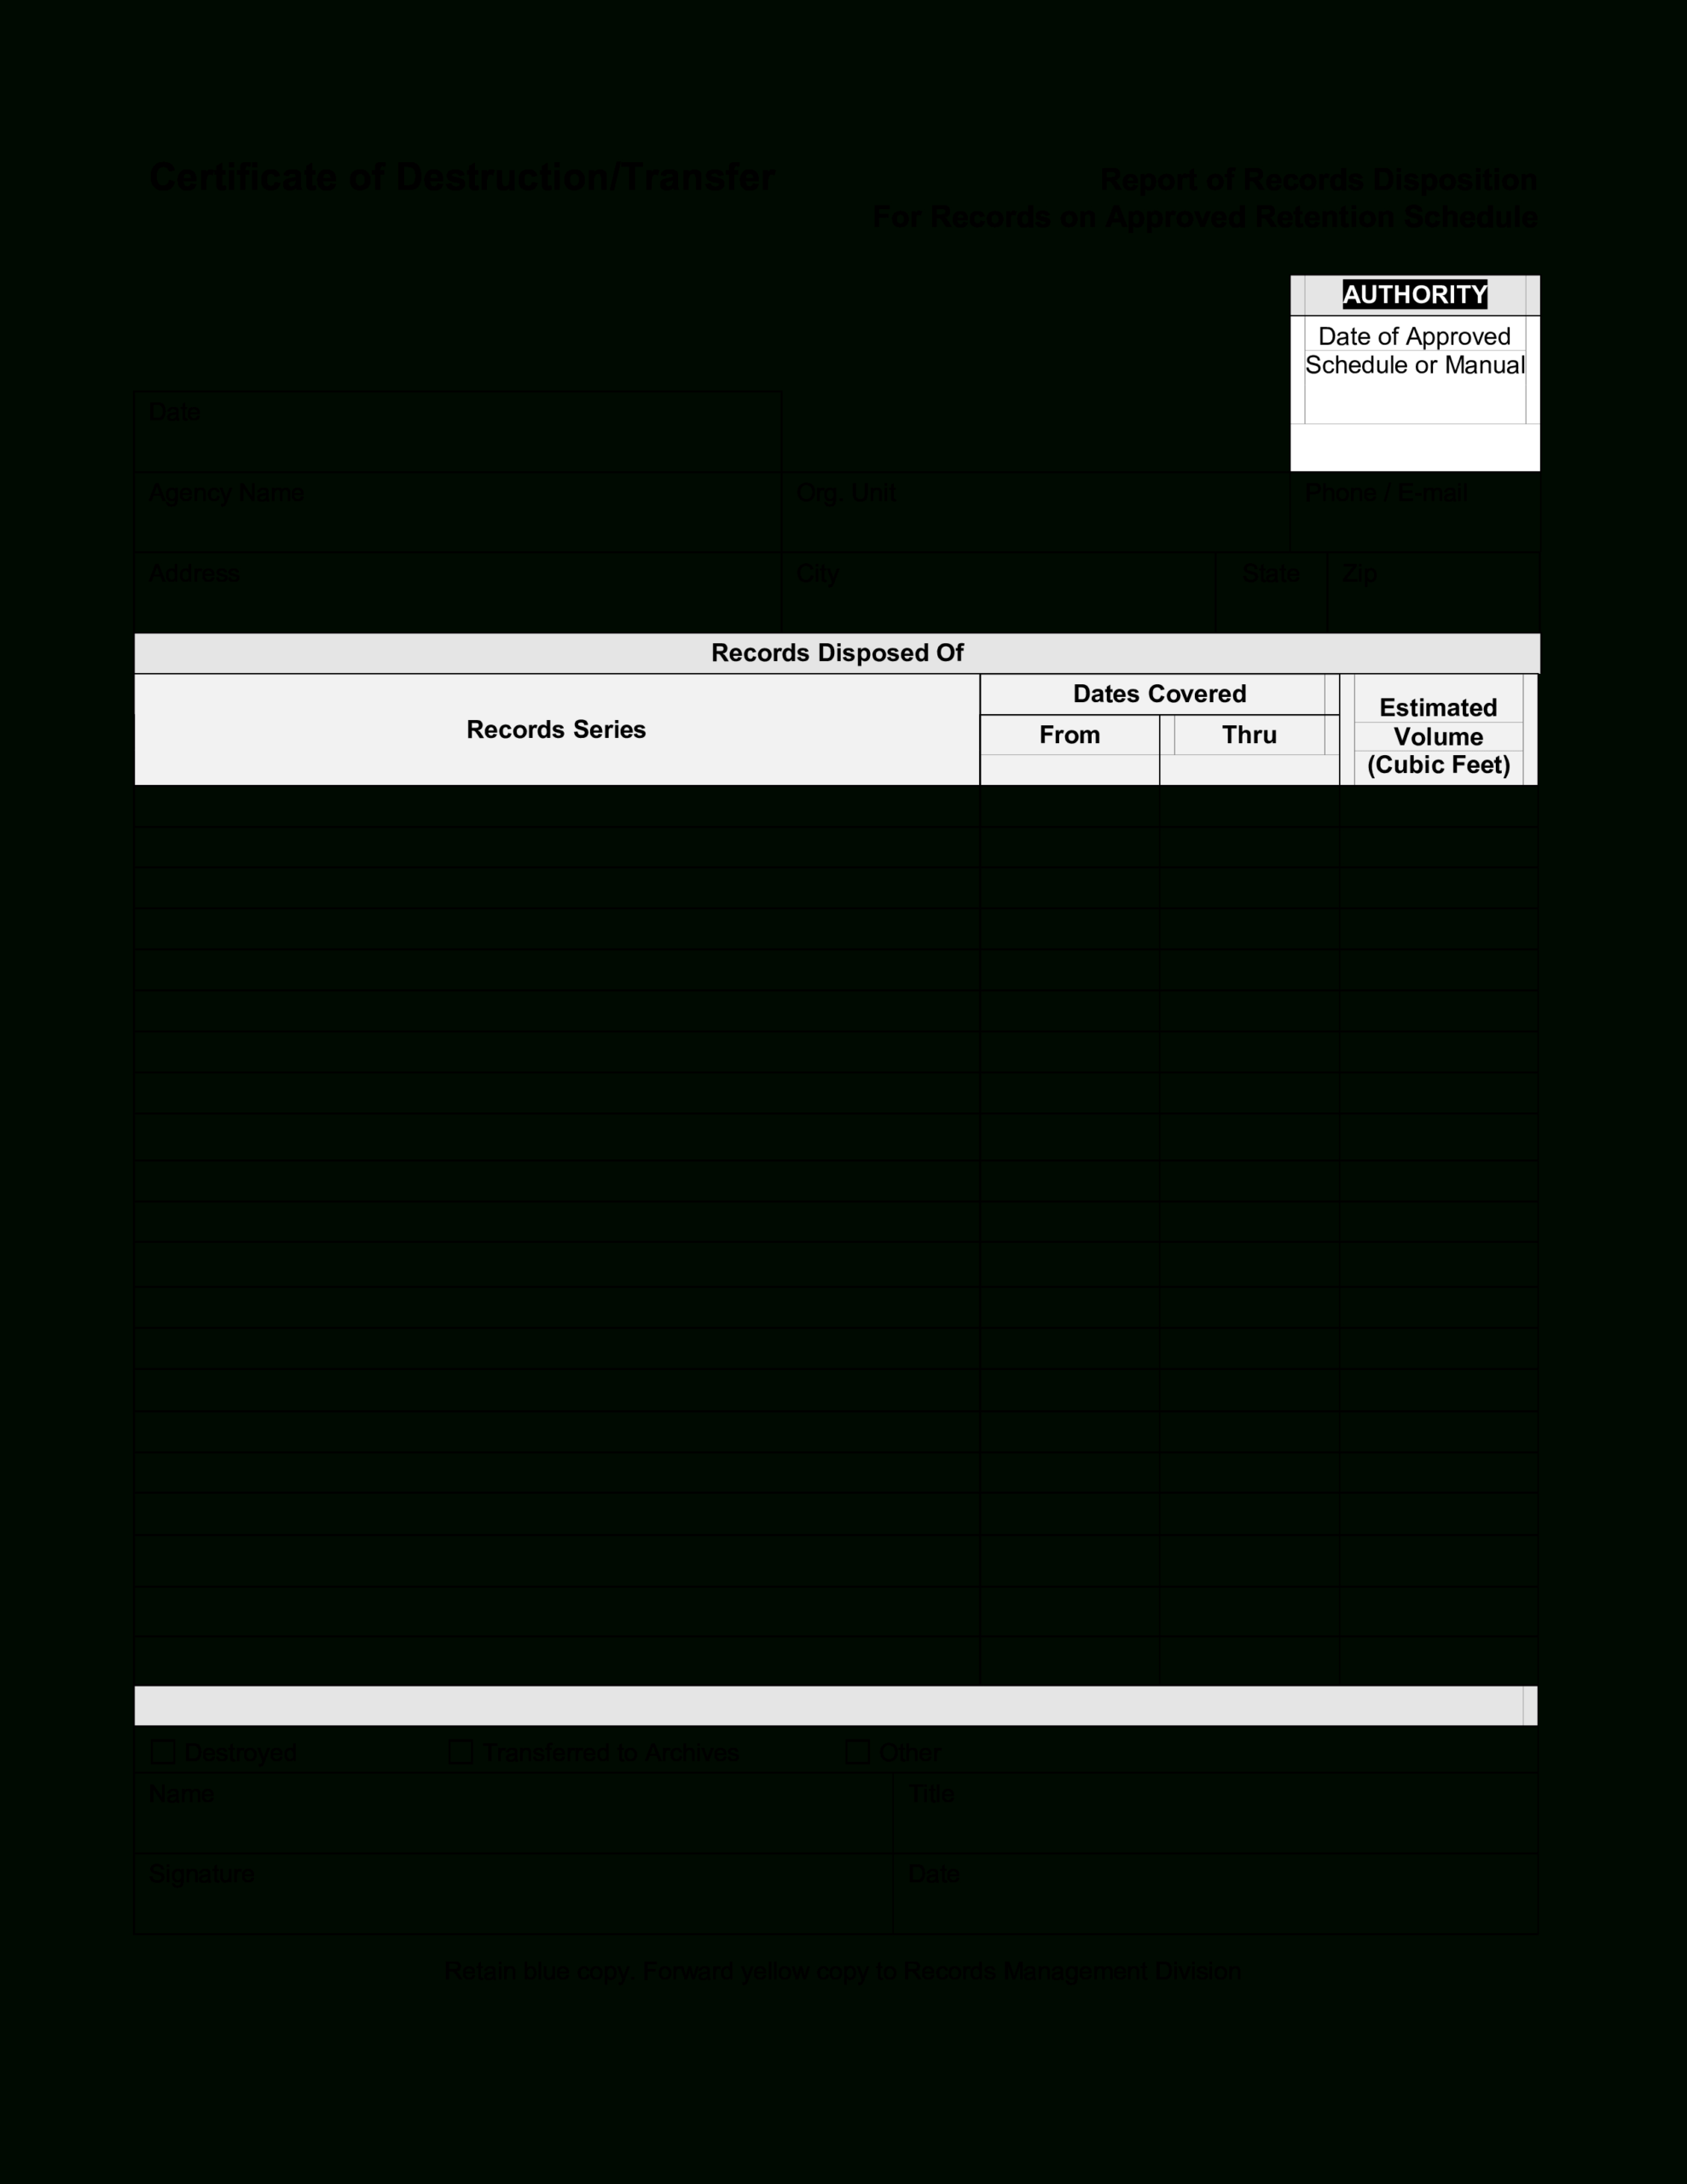 Blank Certificate Of Destruction | Templates At Inside Destruction Certificate Template